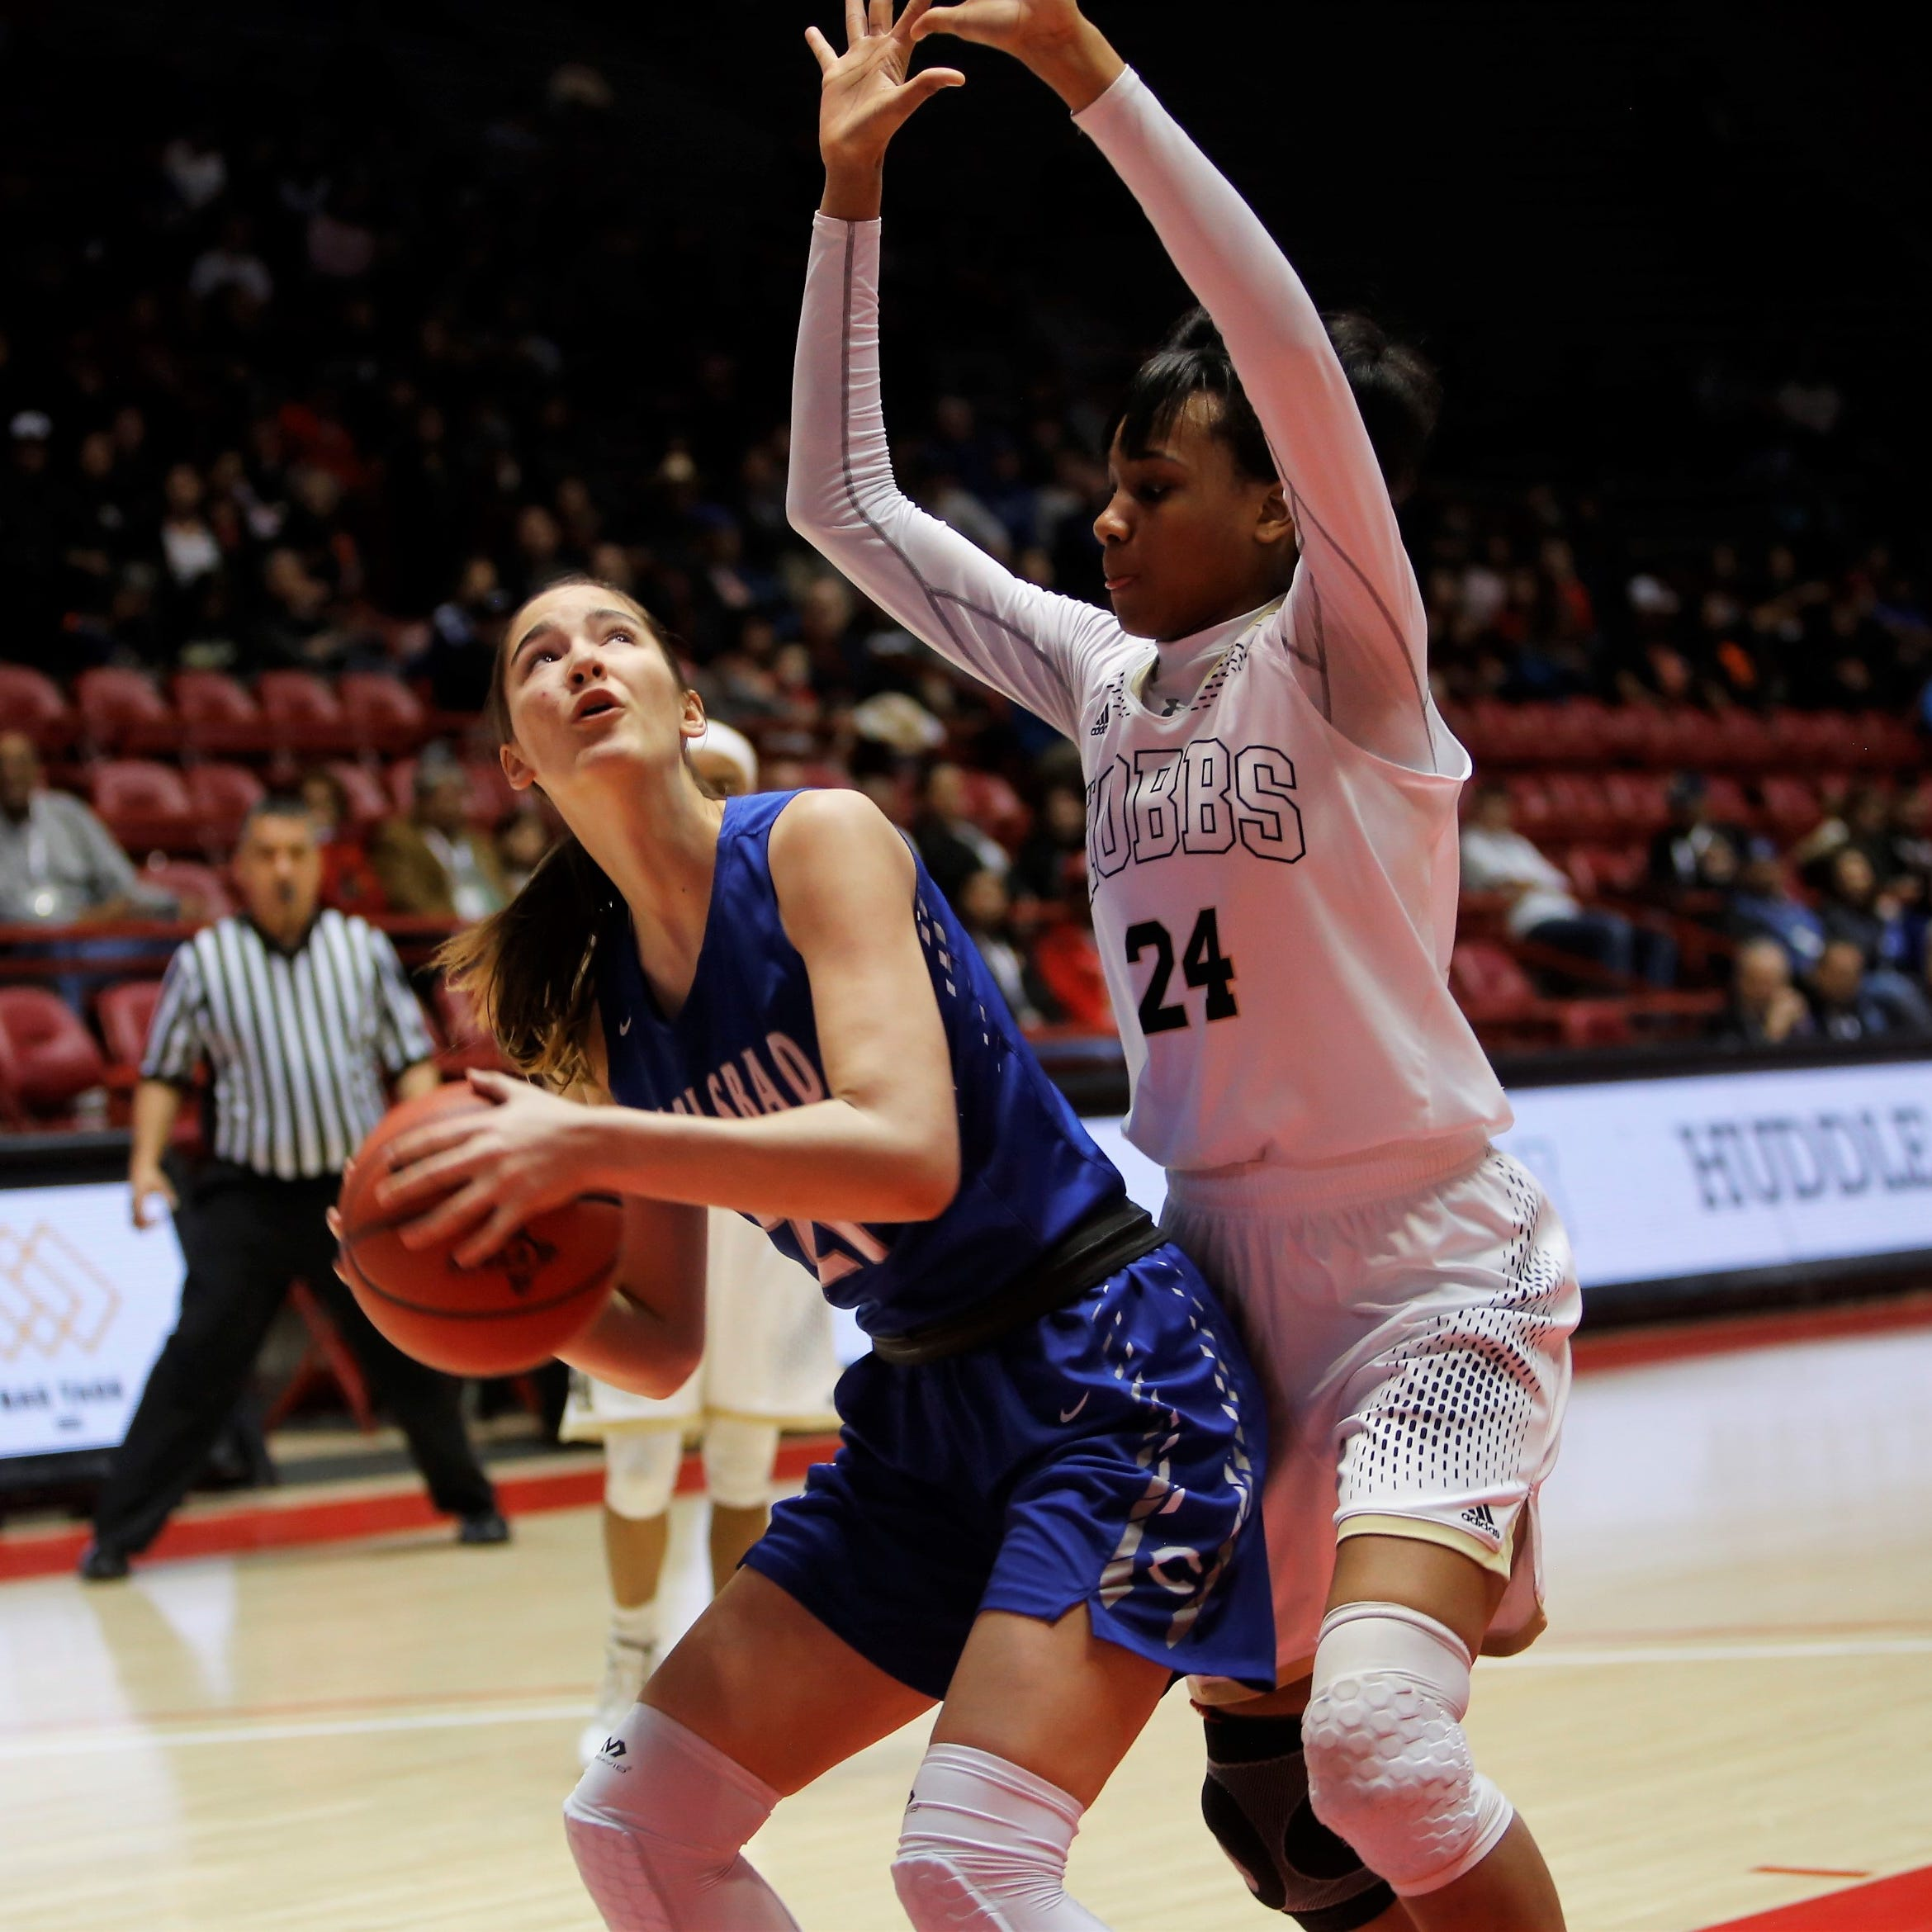 LIVE: NMAA State Basketball Tournament Updates - Day 3: CBad and Hobbs go down to the wire